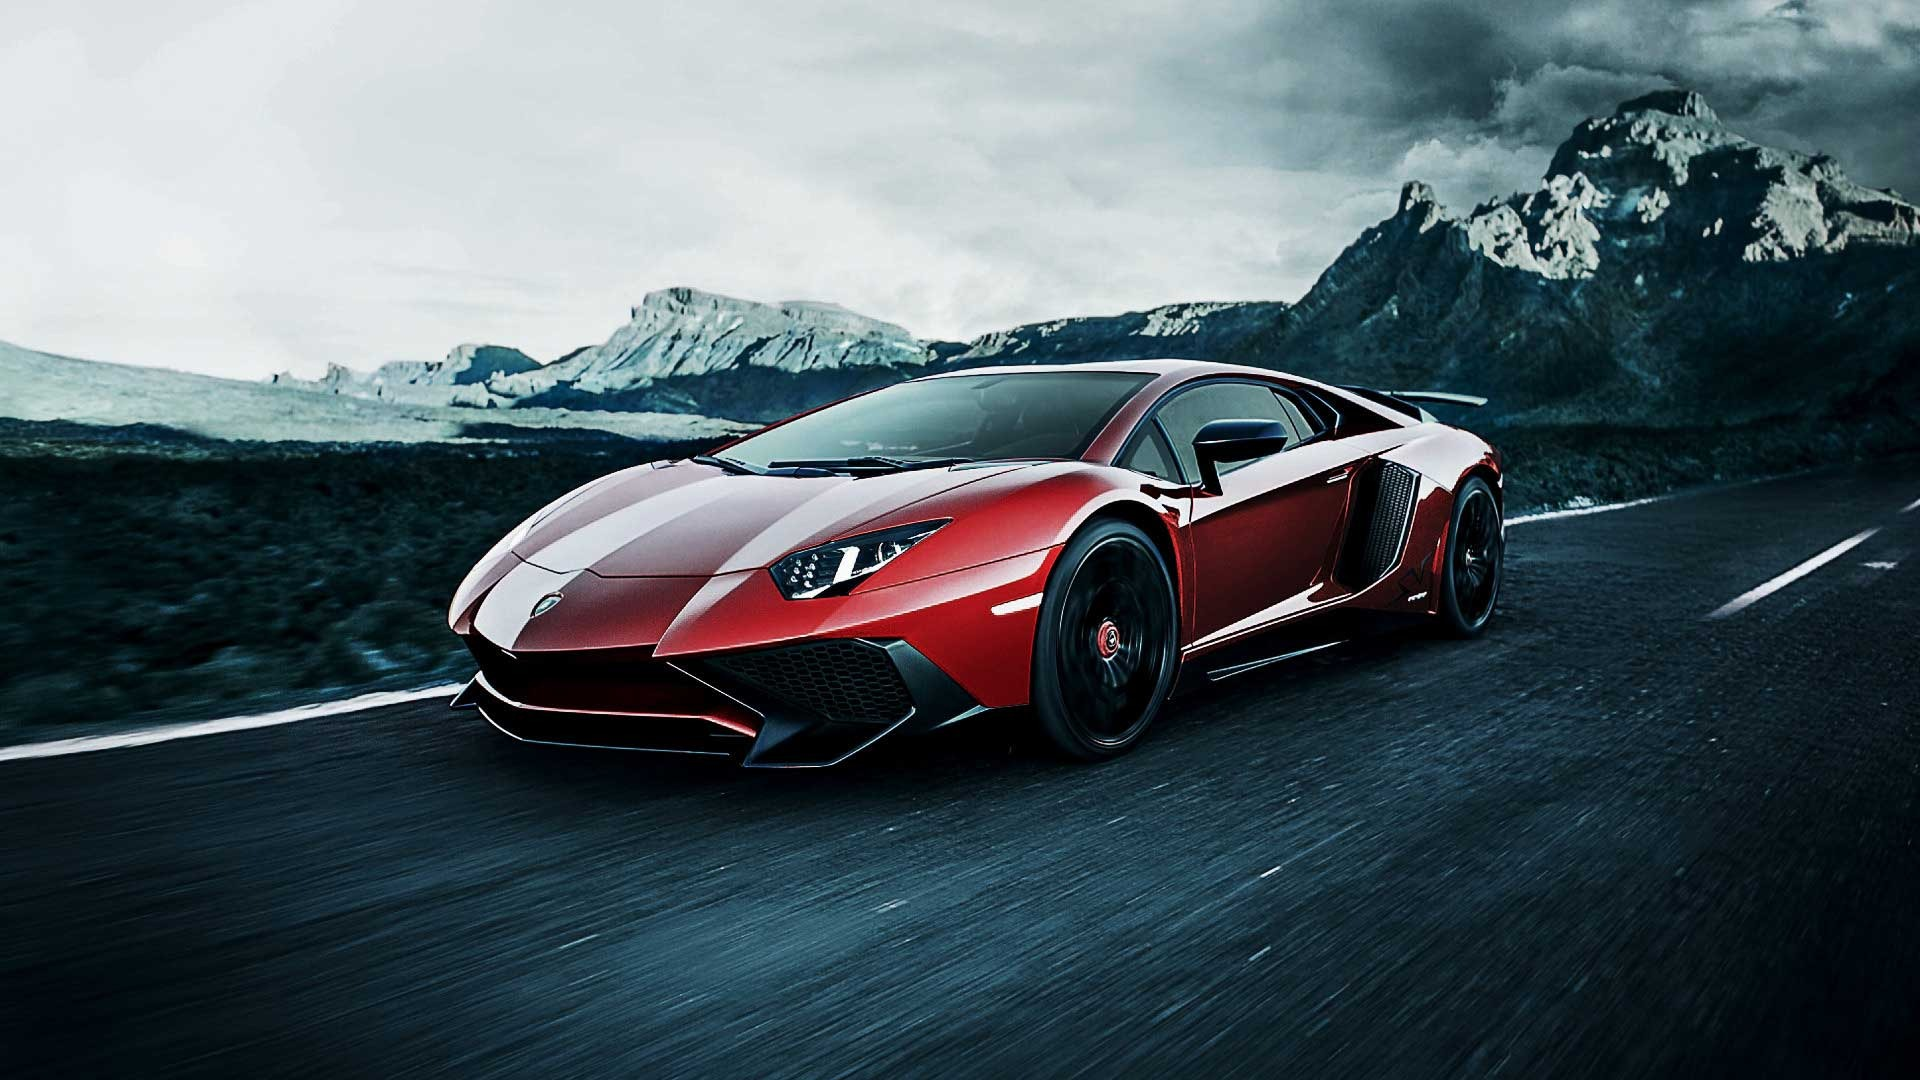 Red Lamborghini on a Speed Road 55.72 Kb